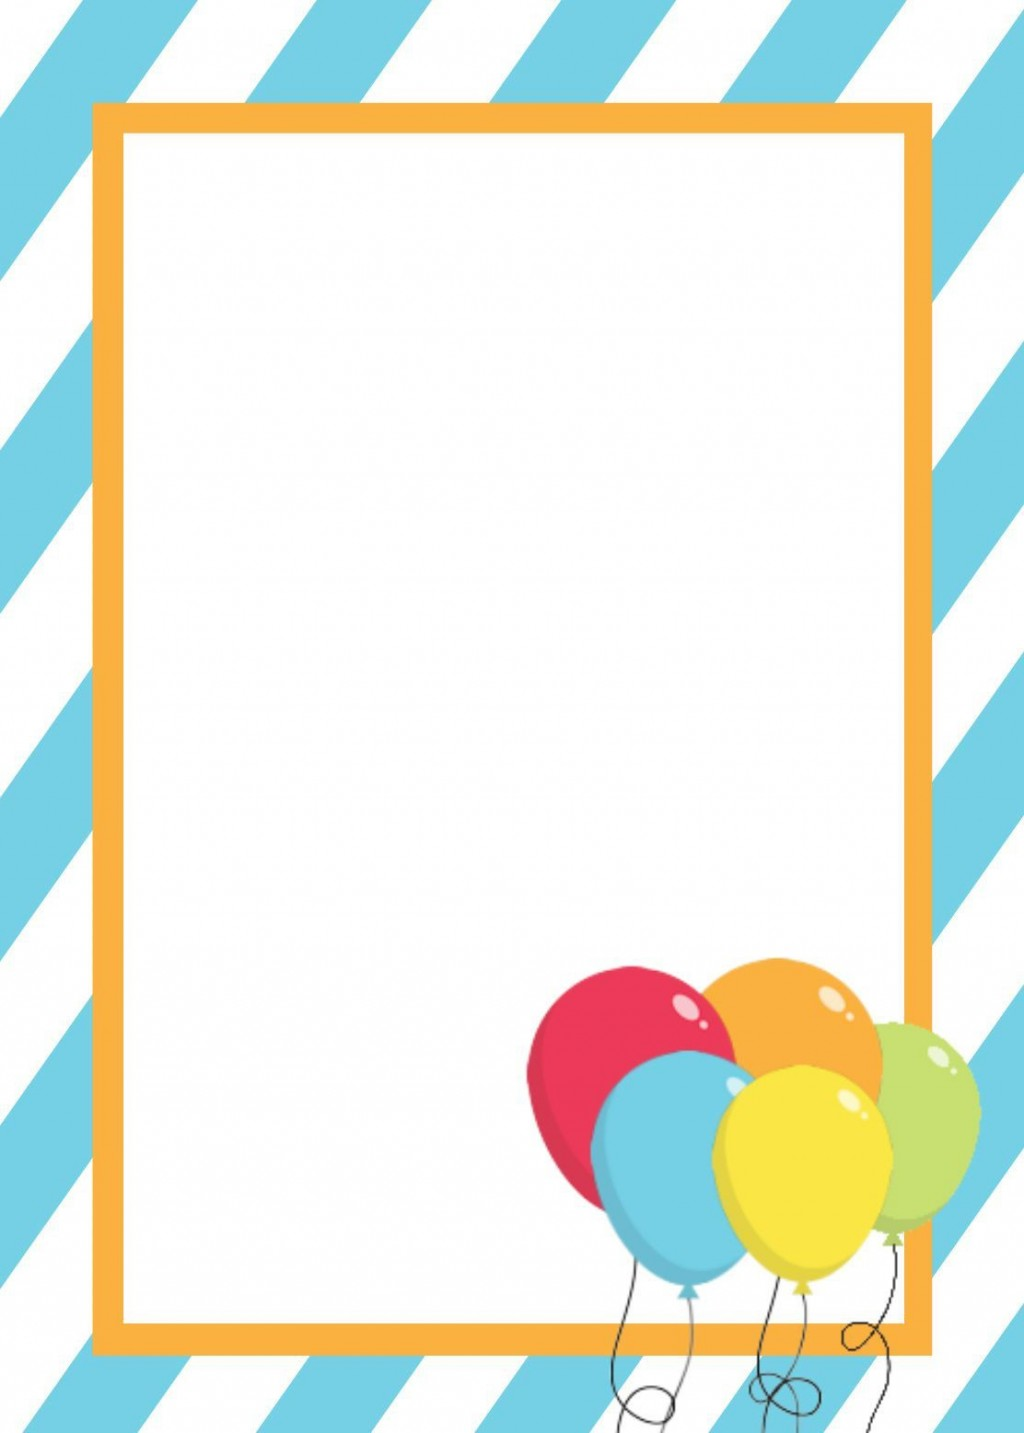 001 Fantastic Blank Birthday Card Template Picture  Word Free Printable Greeting DownloadLarge